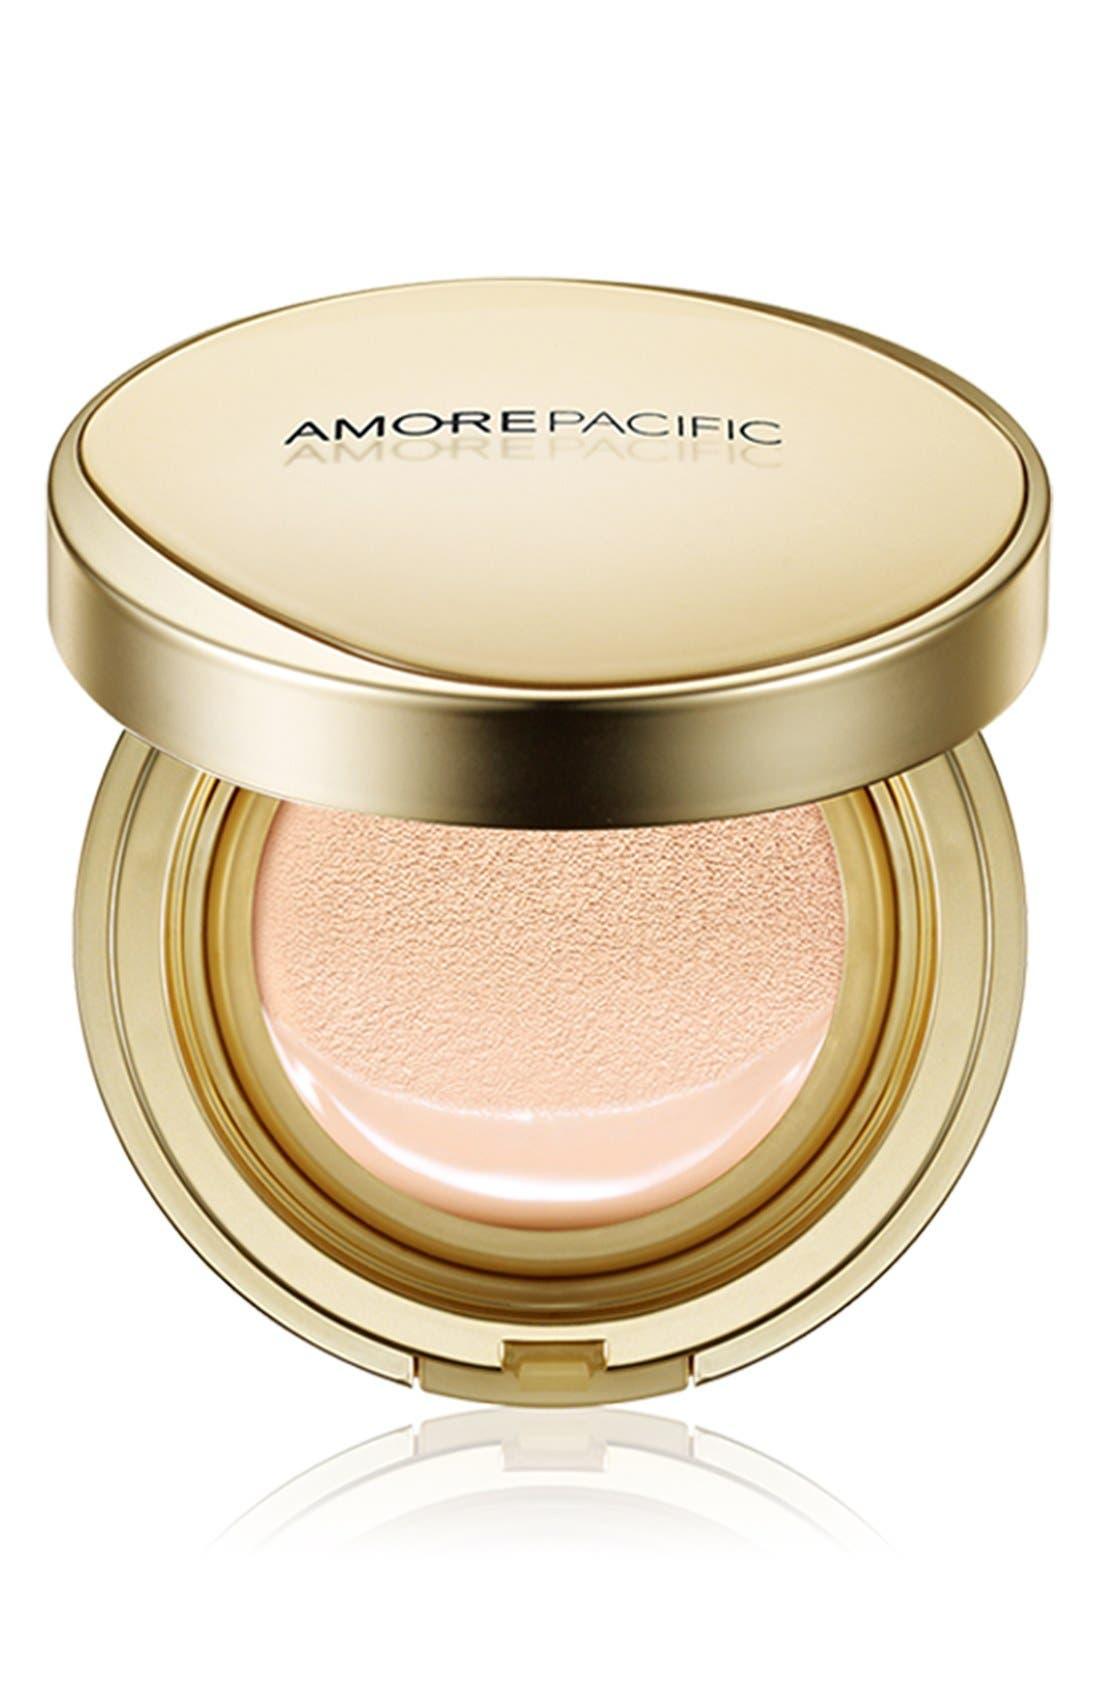 Age Correcting Foundation Cushion Broad Spectrum SPF 25,                             Main thumbnail 1, color,                             102 - LIGHT PINK